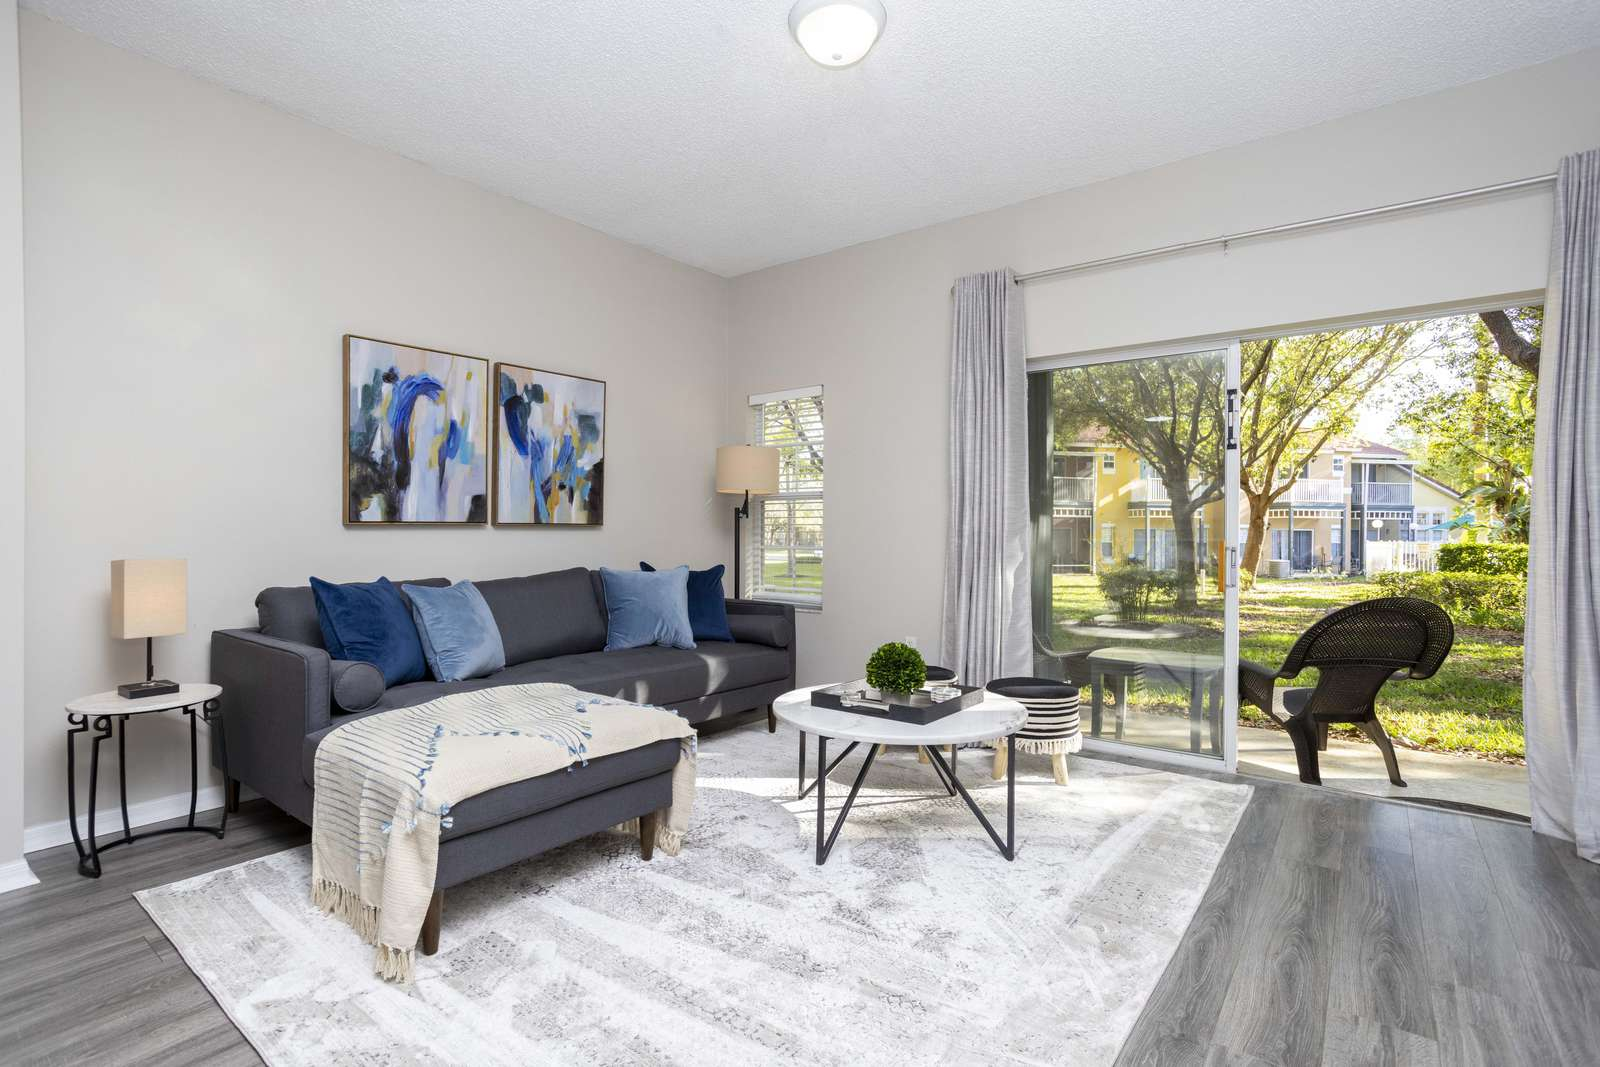 Living room with garden view - property